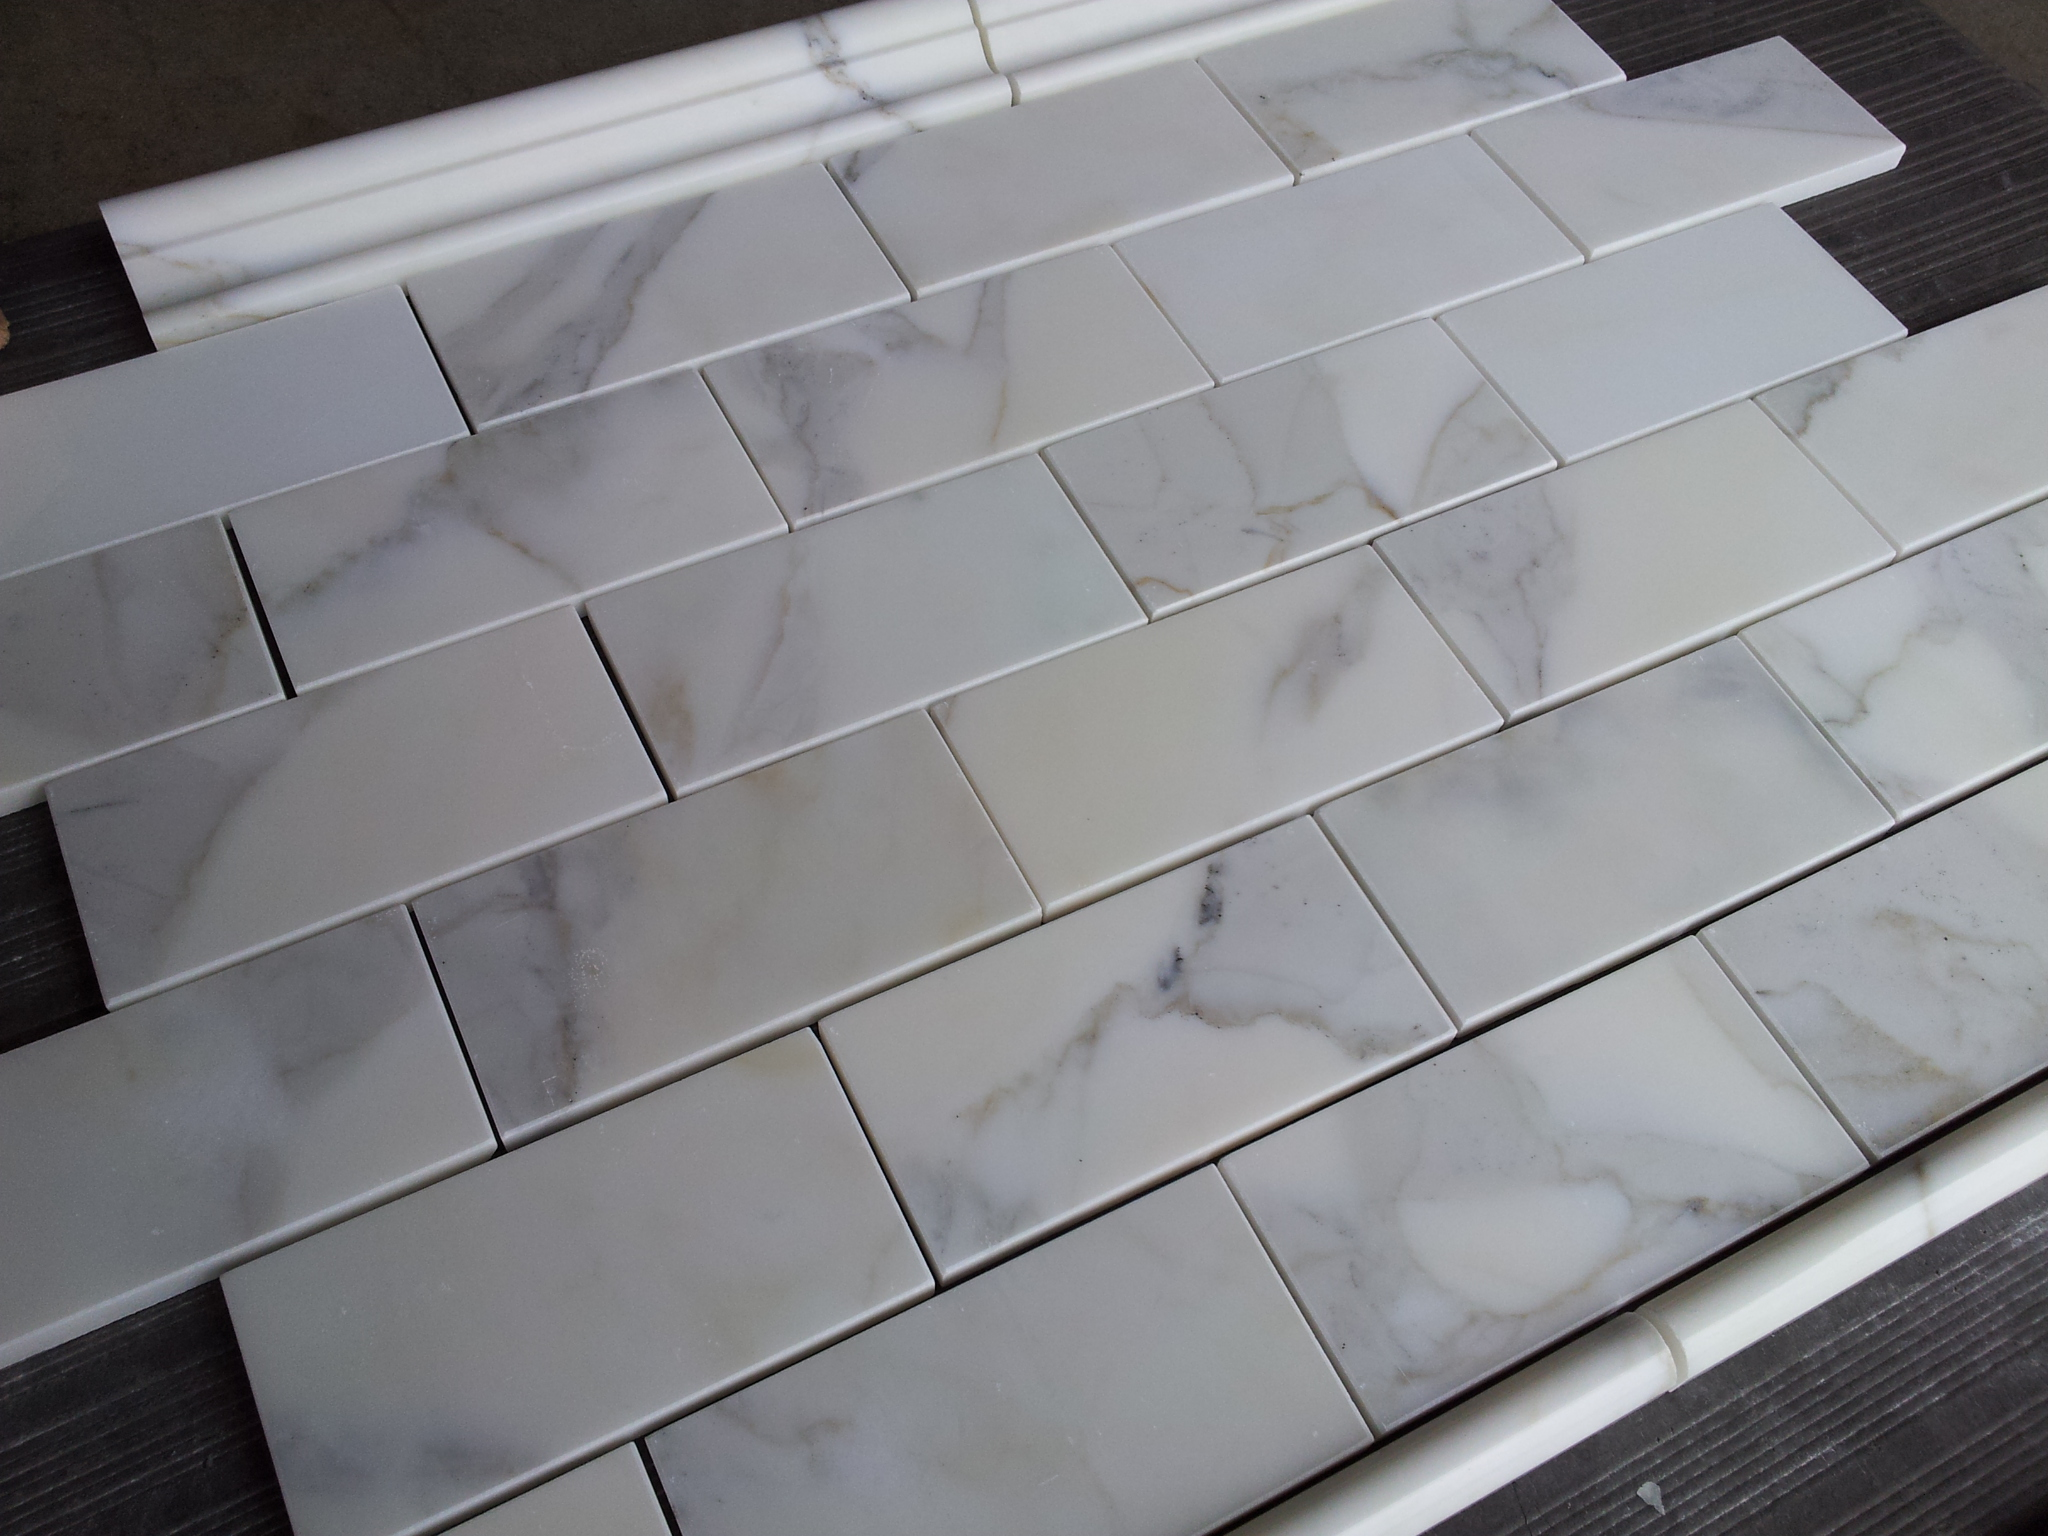 Calacatta Subway Tile Marble The Builder Depot Blog - Carrara porcelain tile 3x6